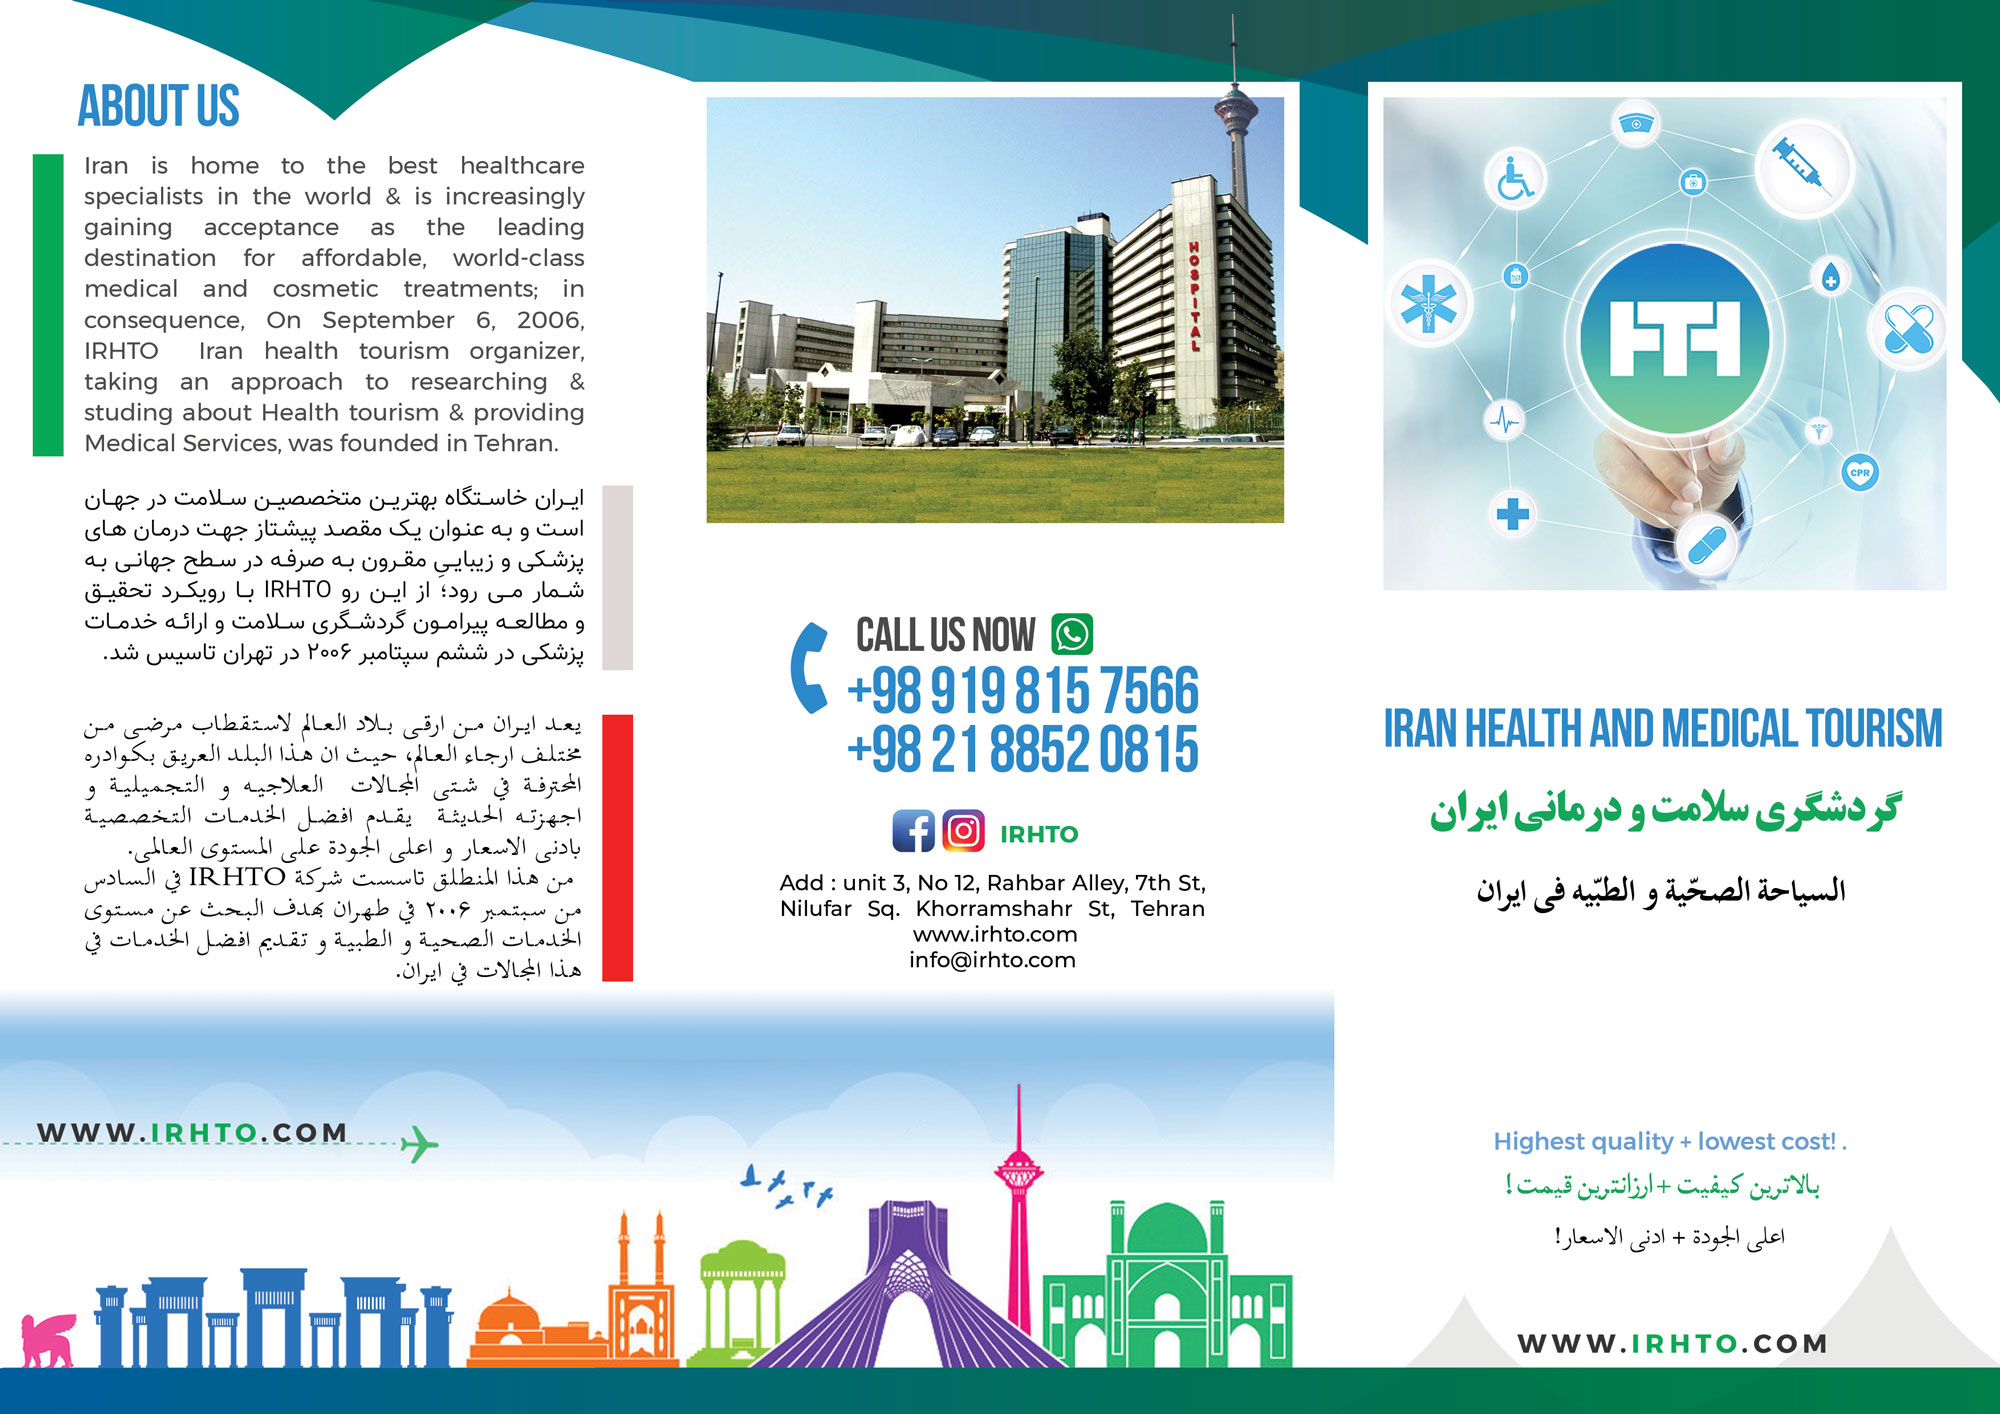 Iran Health And Mecial Tourism - IRHTO